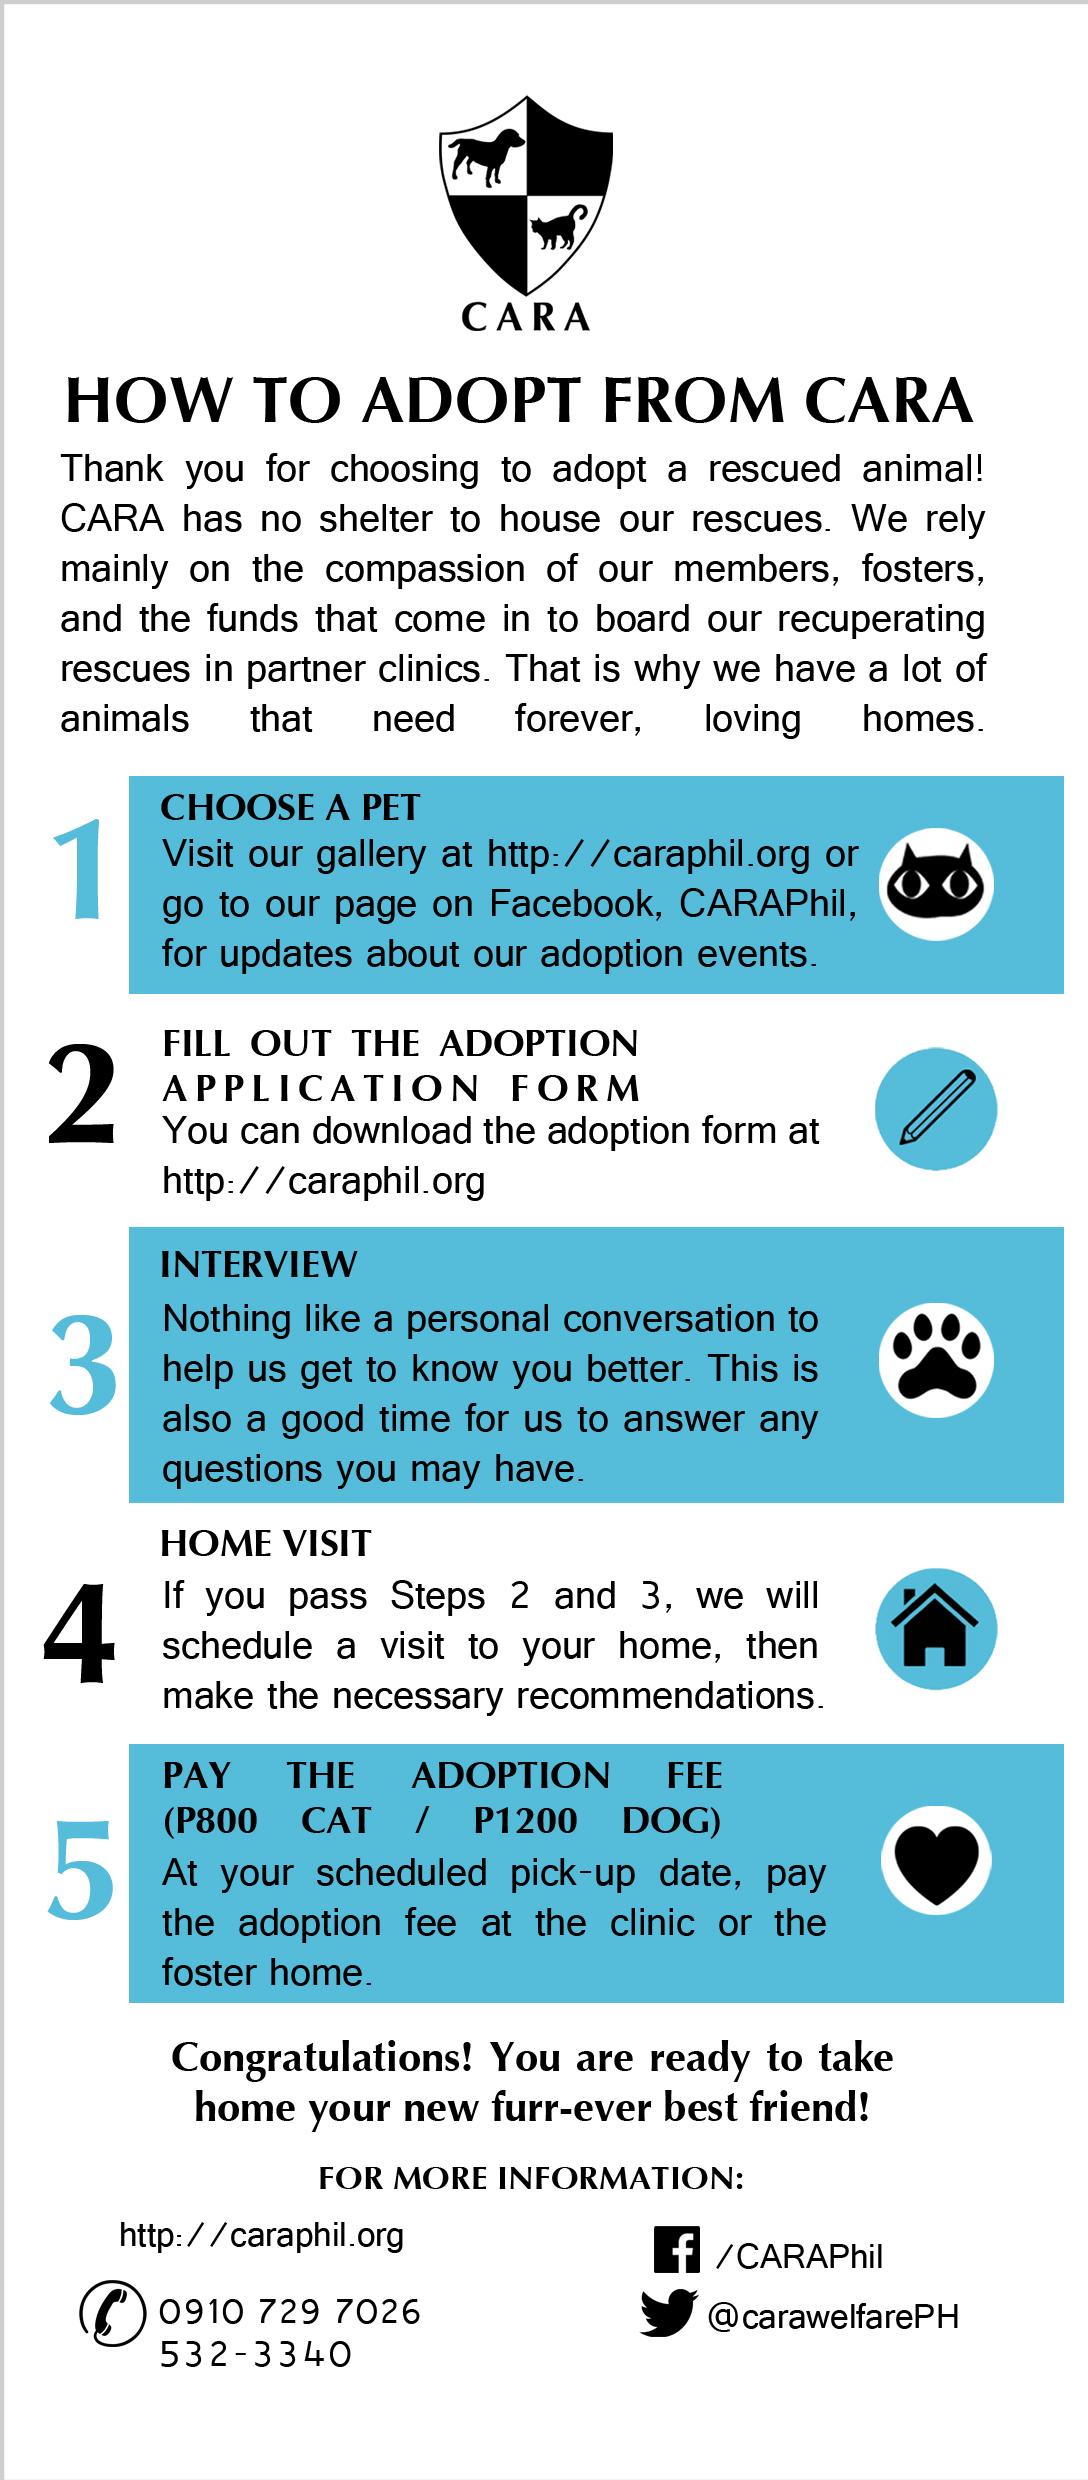 How to Adopt a Pet from CARA